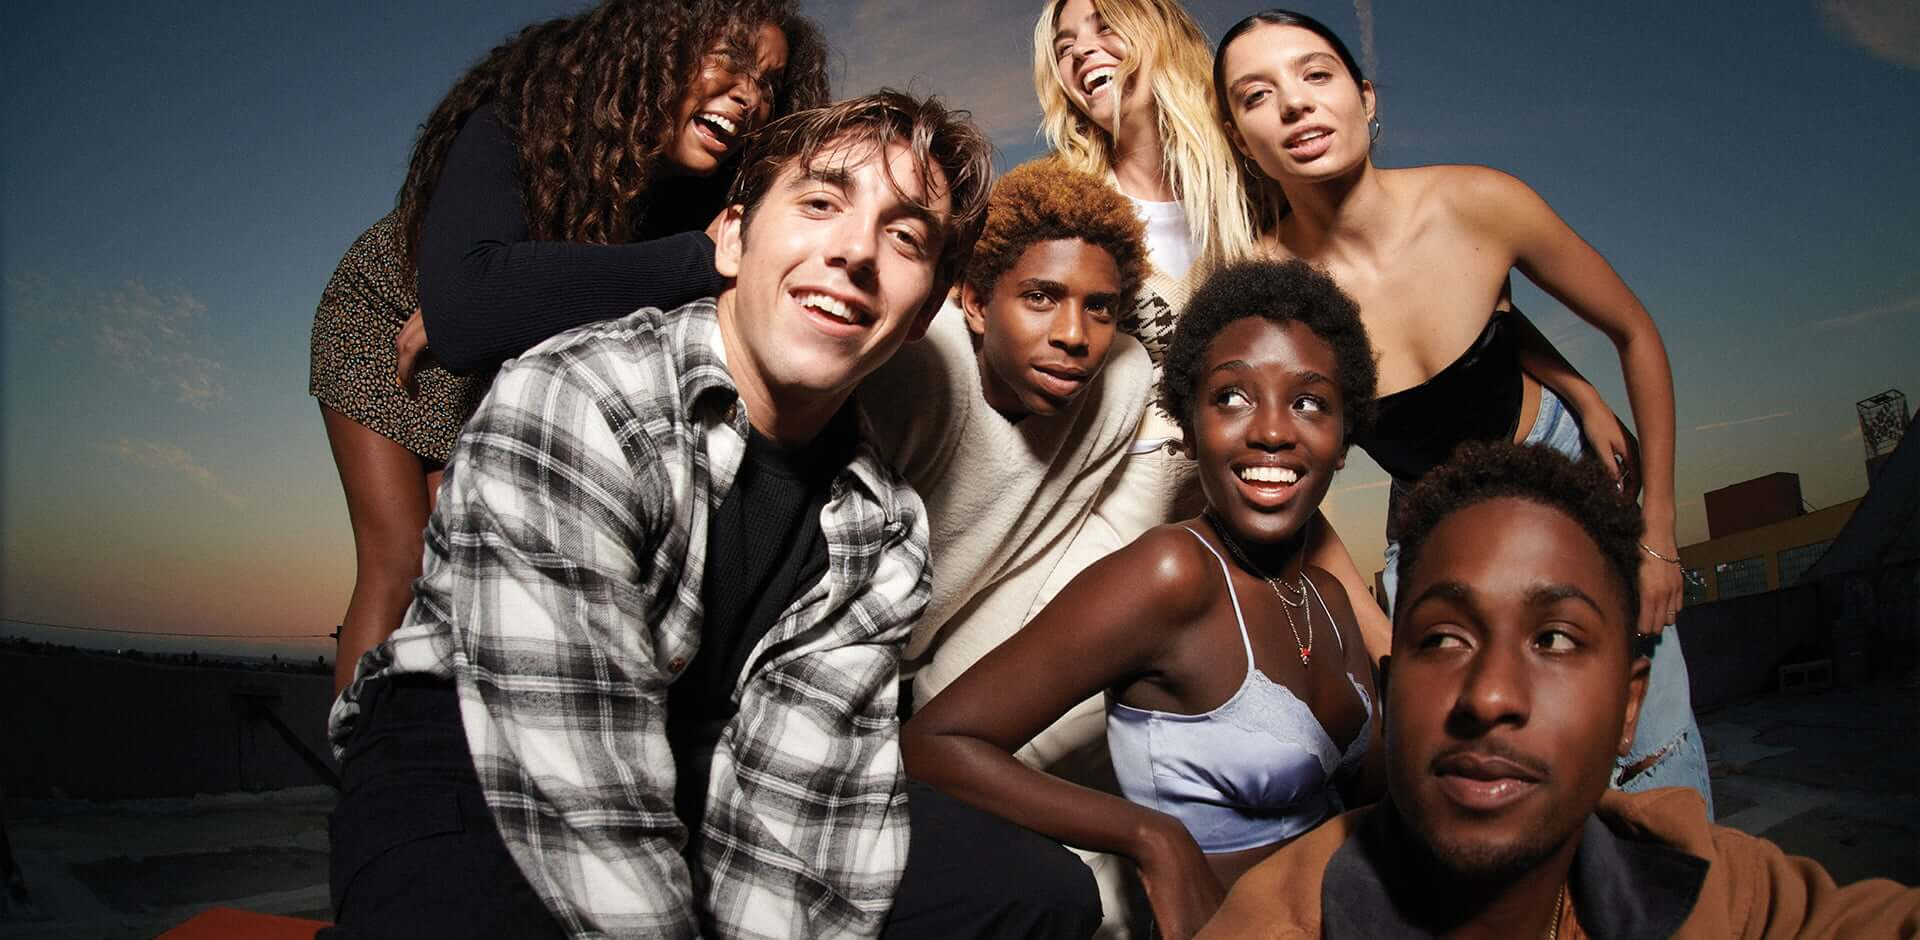 The skateboarding crew Illegal Civ as well as Tavia, Sparkle, Crystal, and Ganna pose on a rooftop for the Garage Fall 2021 campaign.